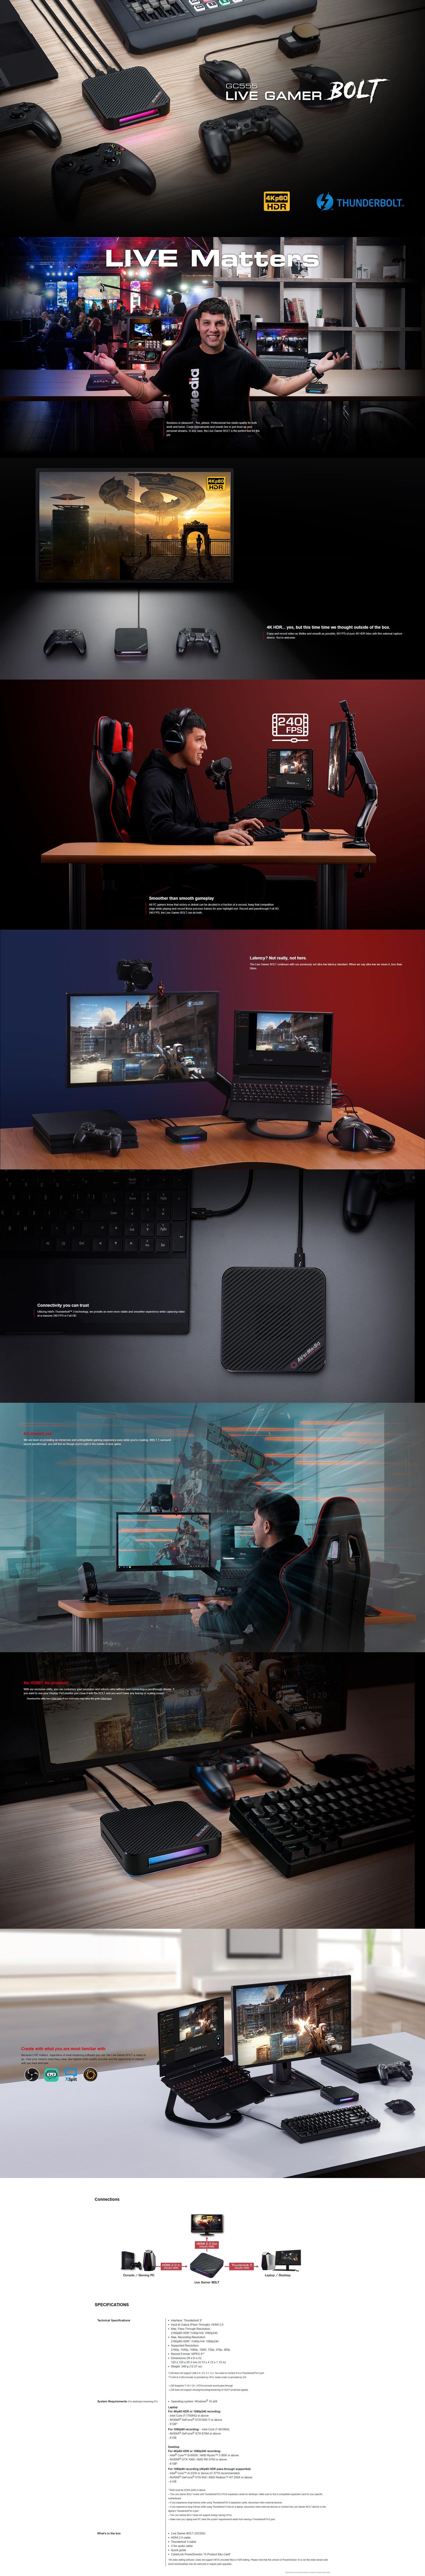 A large marketing image providing additional information about the product AVerMedia GC555 Live Gamer Bolt 4K HDR Capture Device - Additional alt info not provided